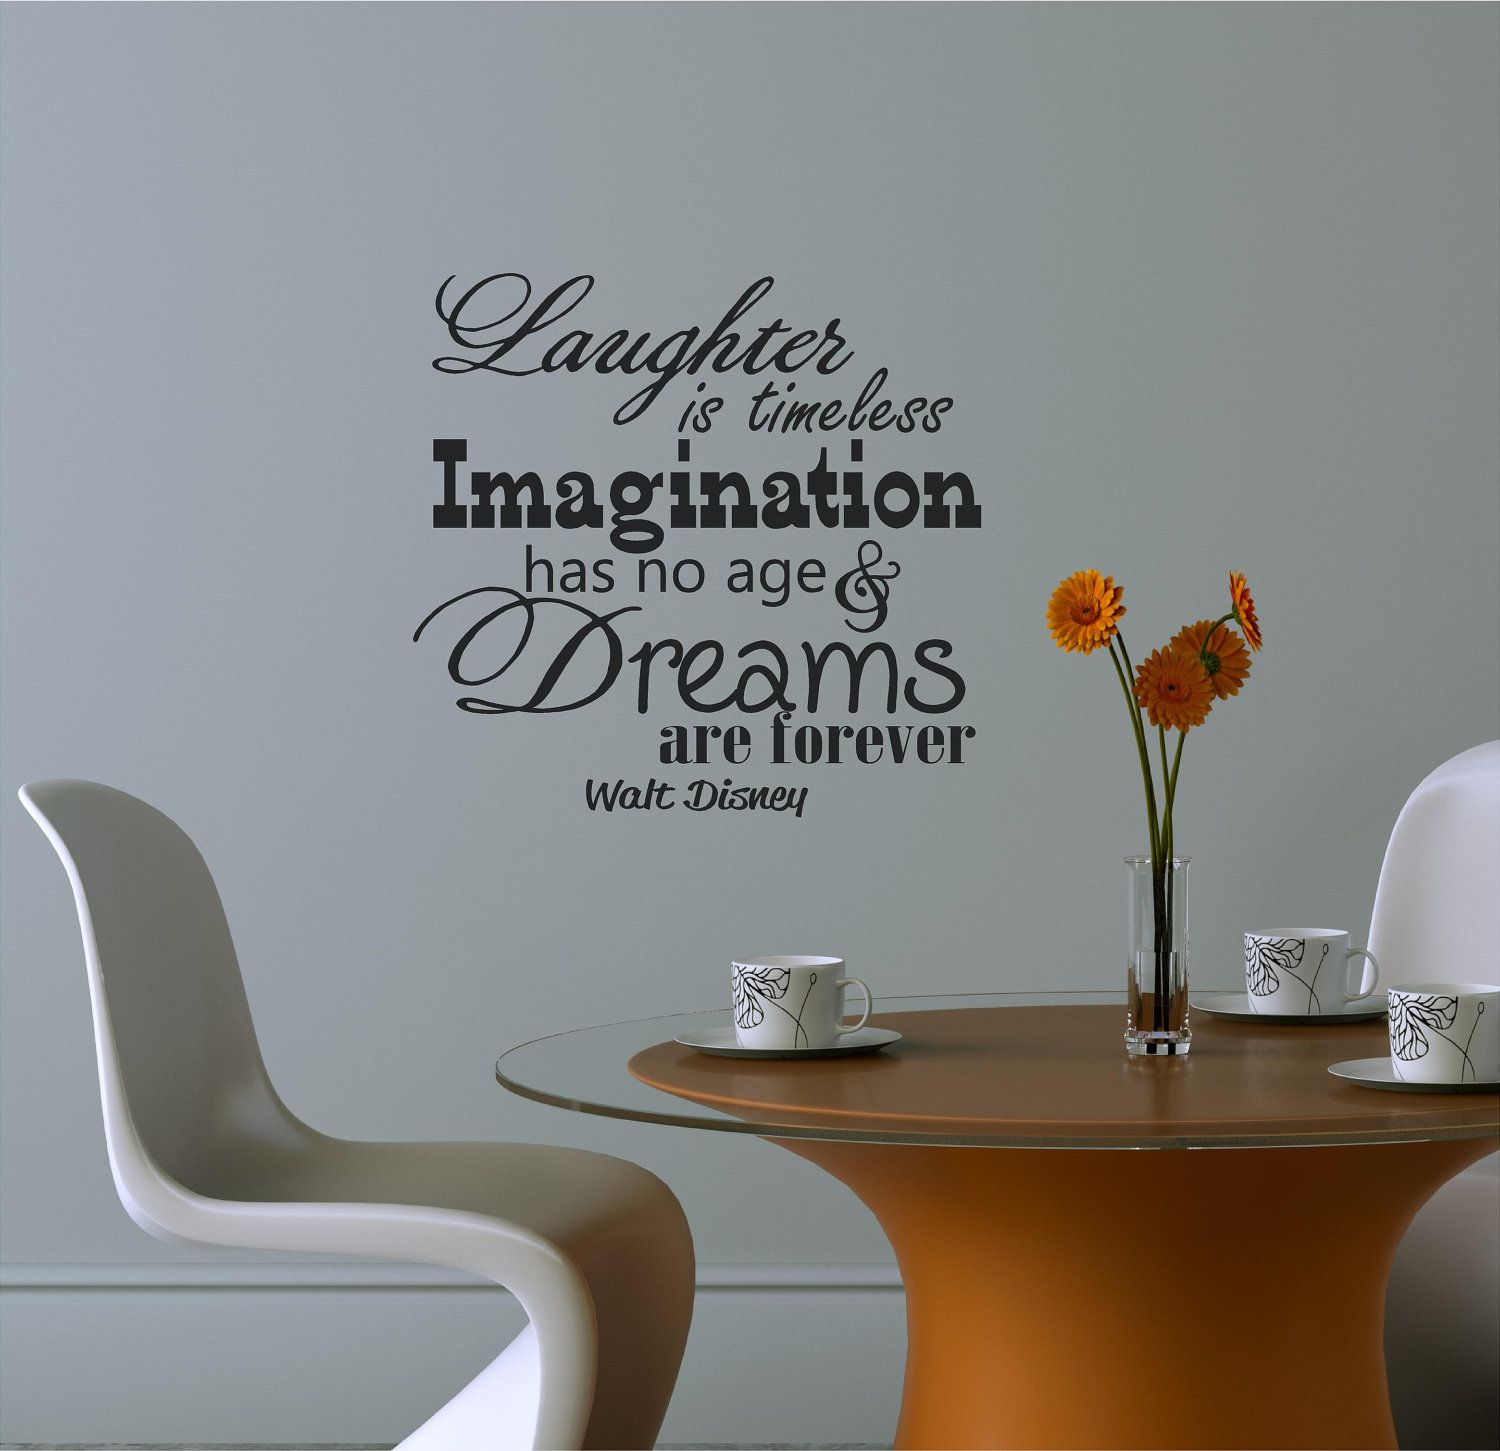 Laughter Is Timeless Imagination Walt Disney Vinyl Decor Wall - Custom vinyl lettering wall decals art sayings